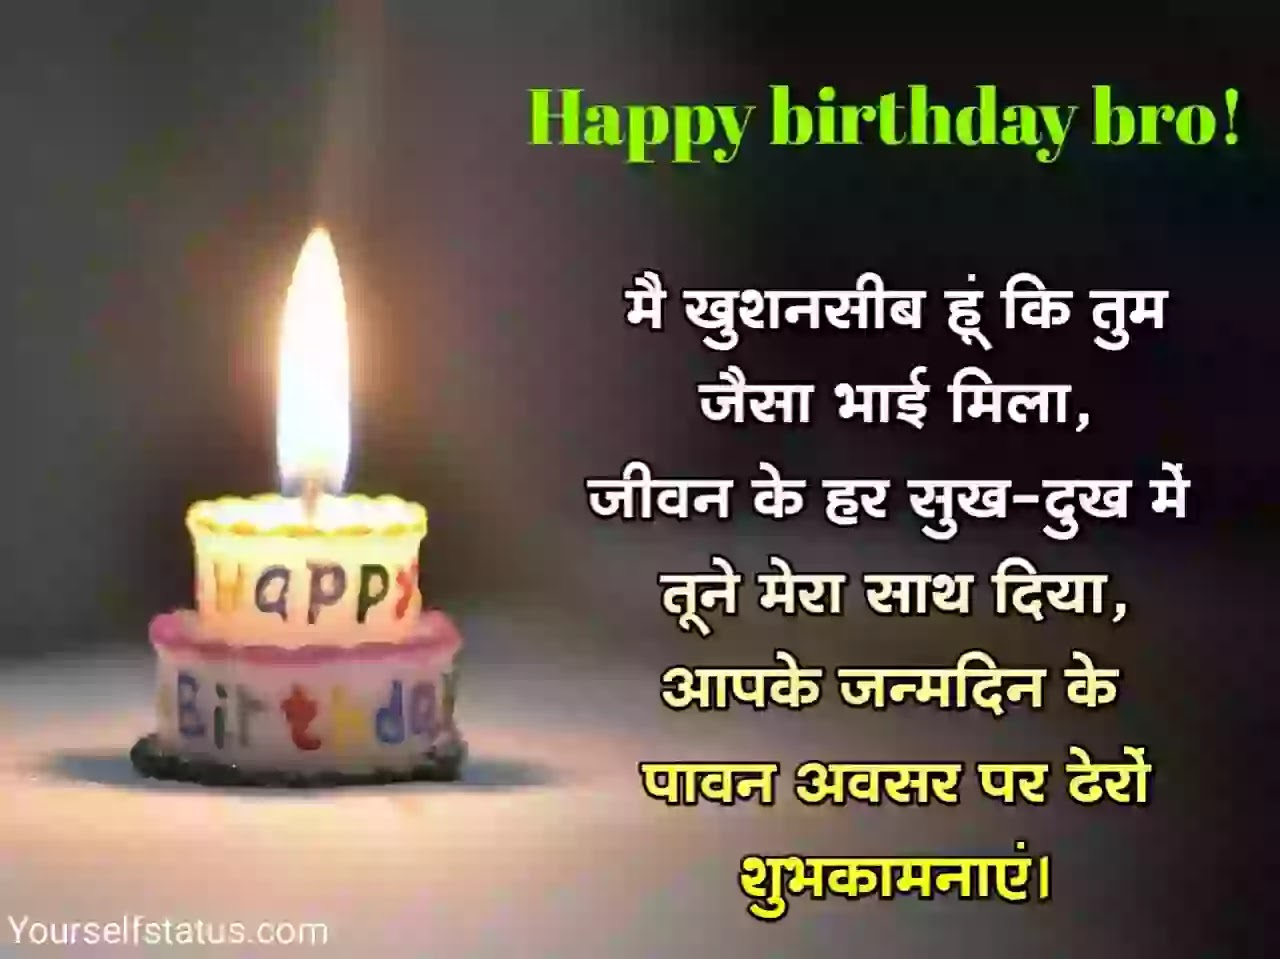 Birthday-quotes-for-brother-hindi